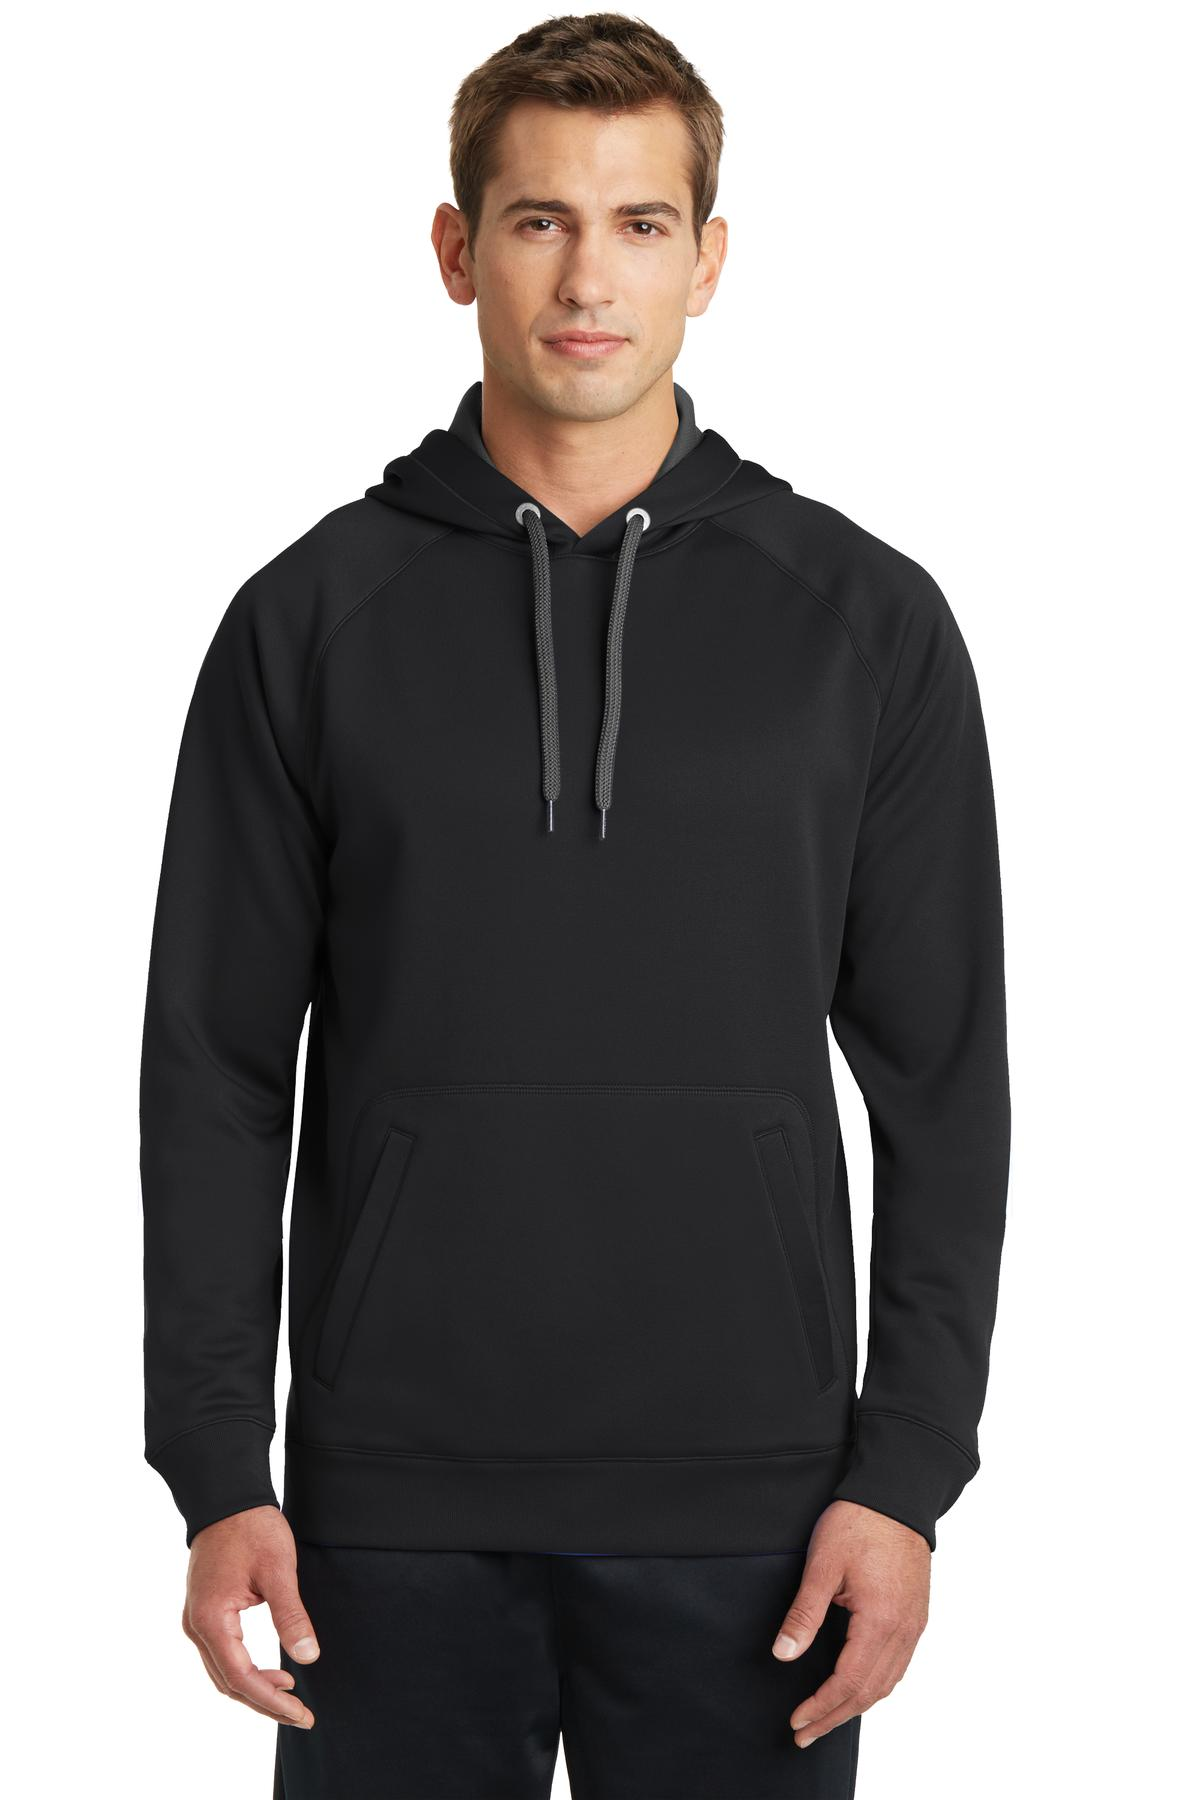 Sport-Tek® ST250 - Tech Fleece Hooded Sweatshirt